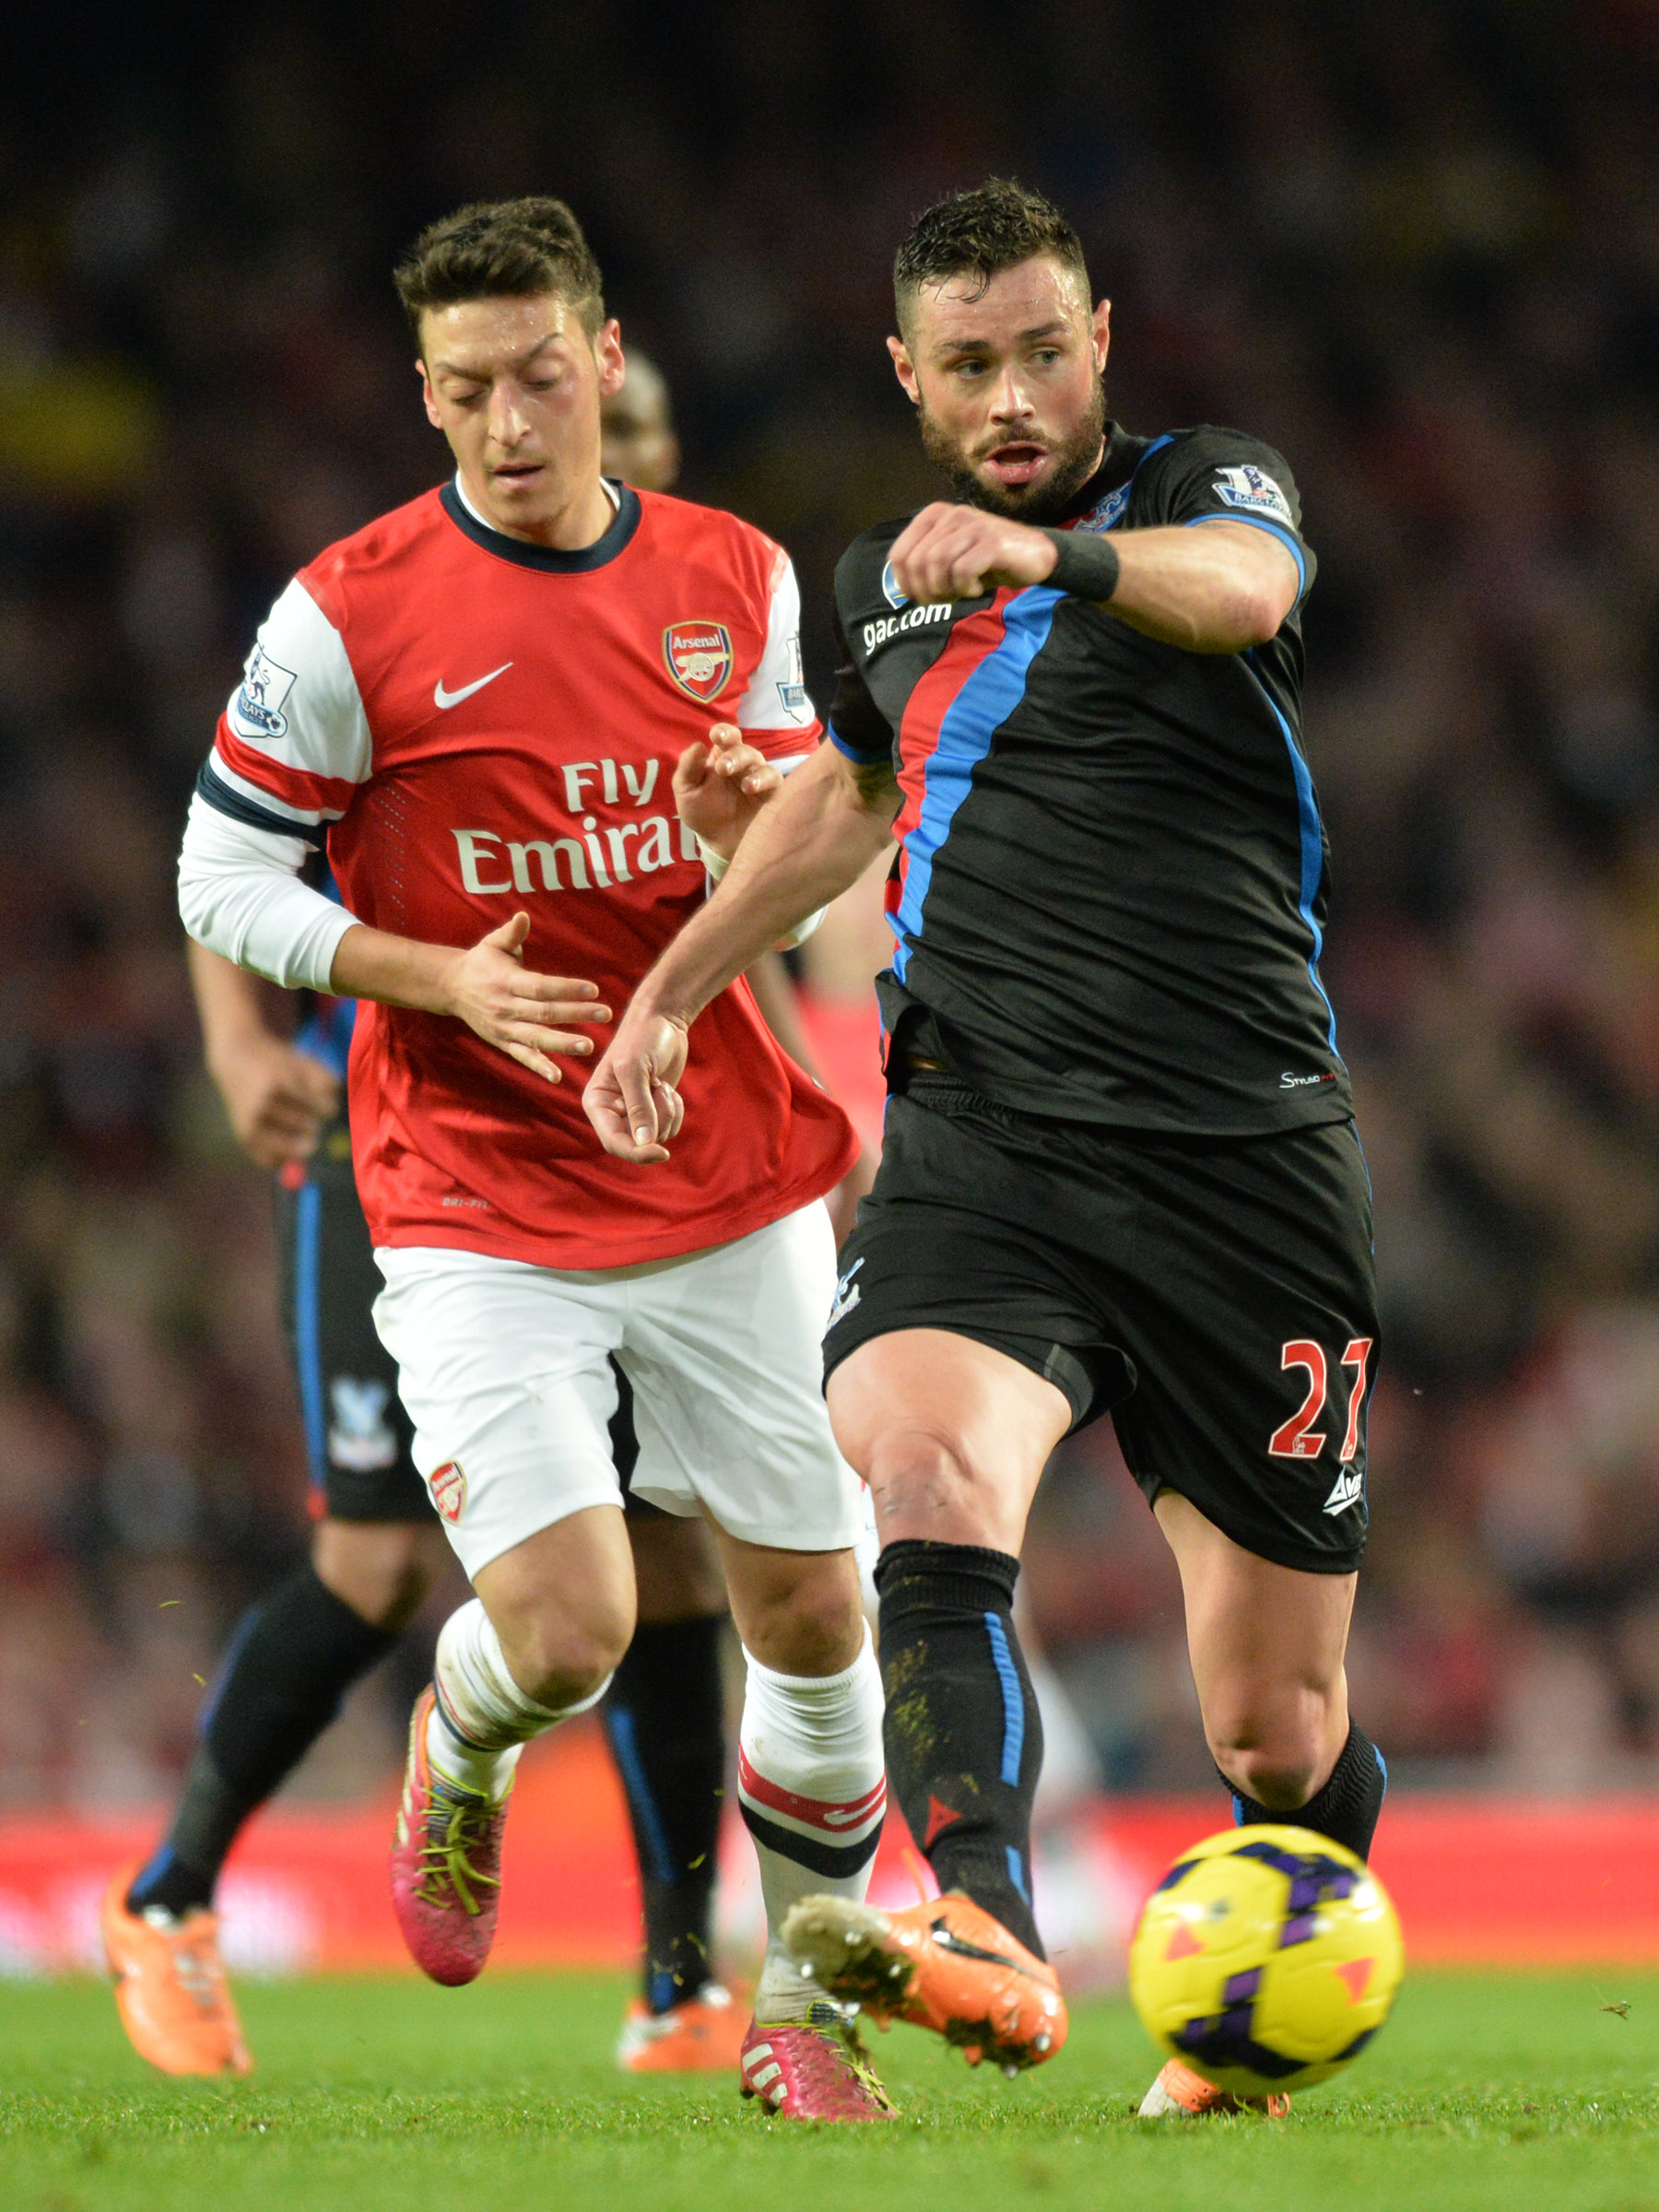 Sutton Guardian: The Eagles defender gets the better of German star Mesut Ozil at the Emirates. PICTURE BY KEITH GILLARD.